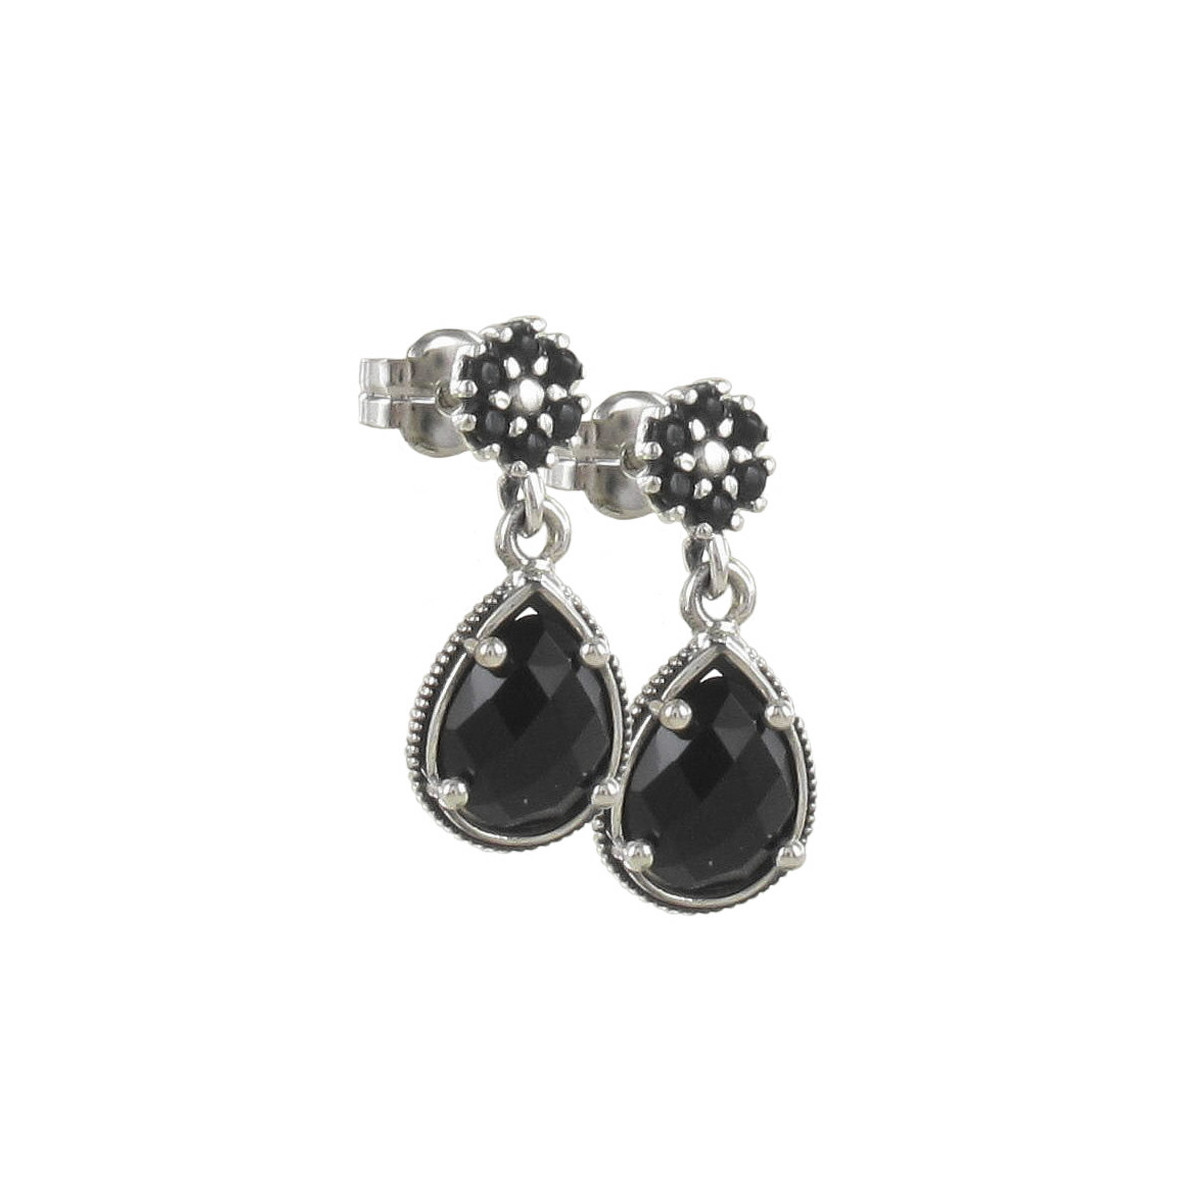 SILVER EARRINGS WITH BLACK STONES